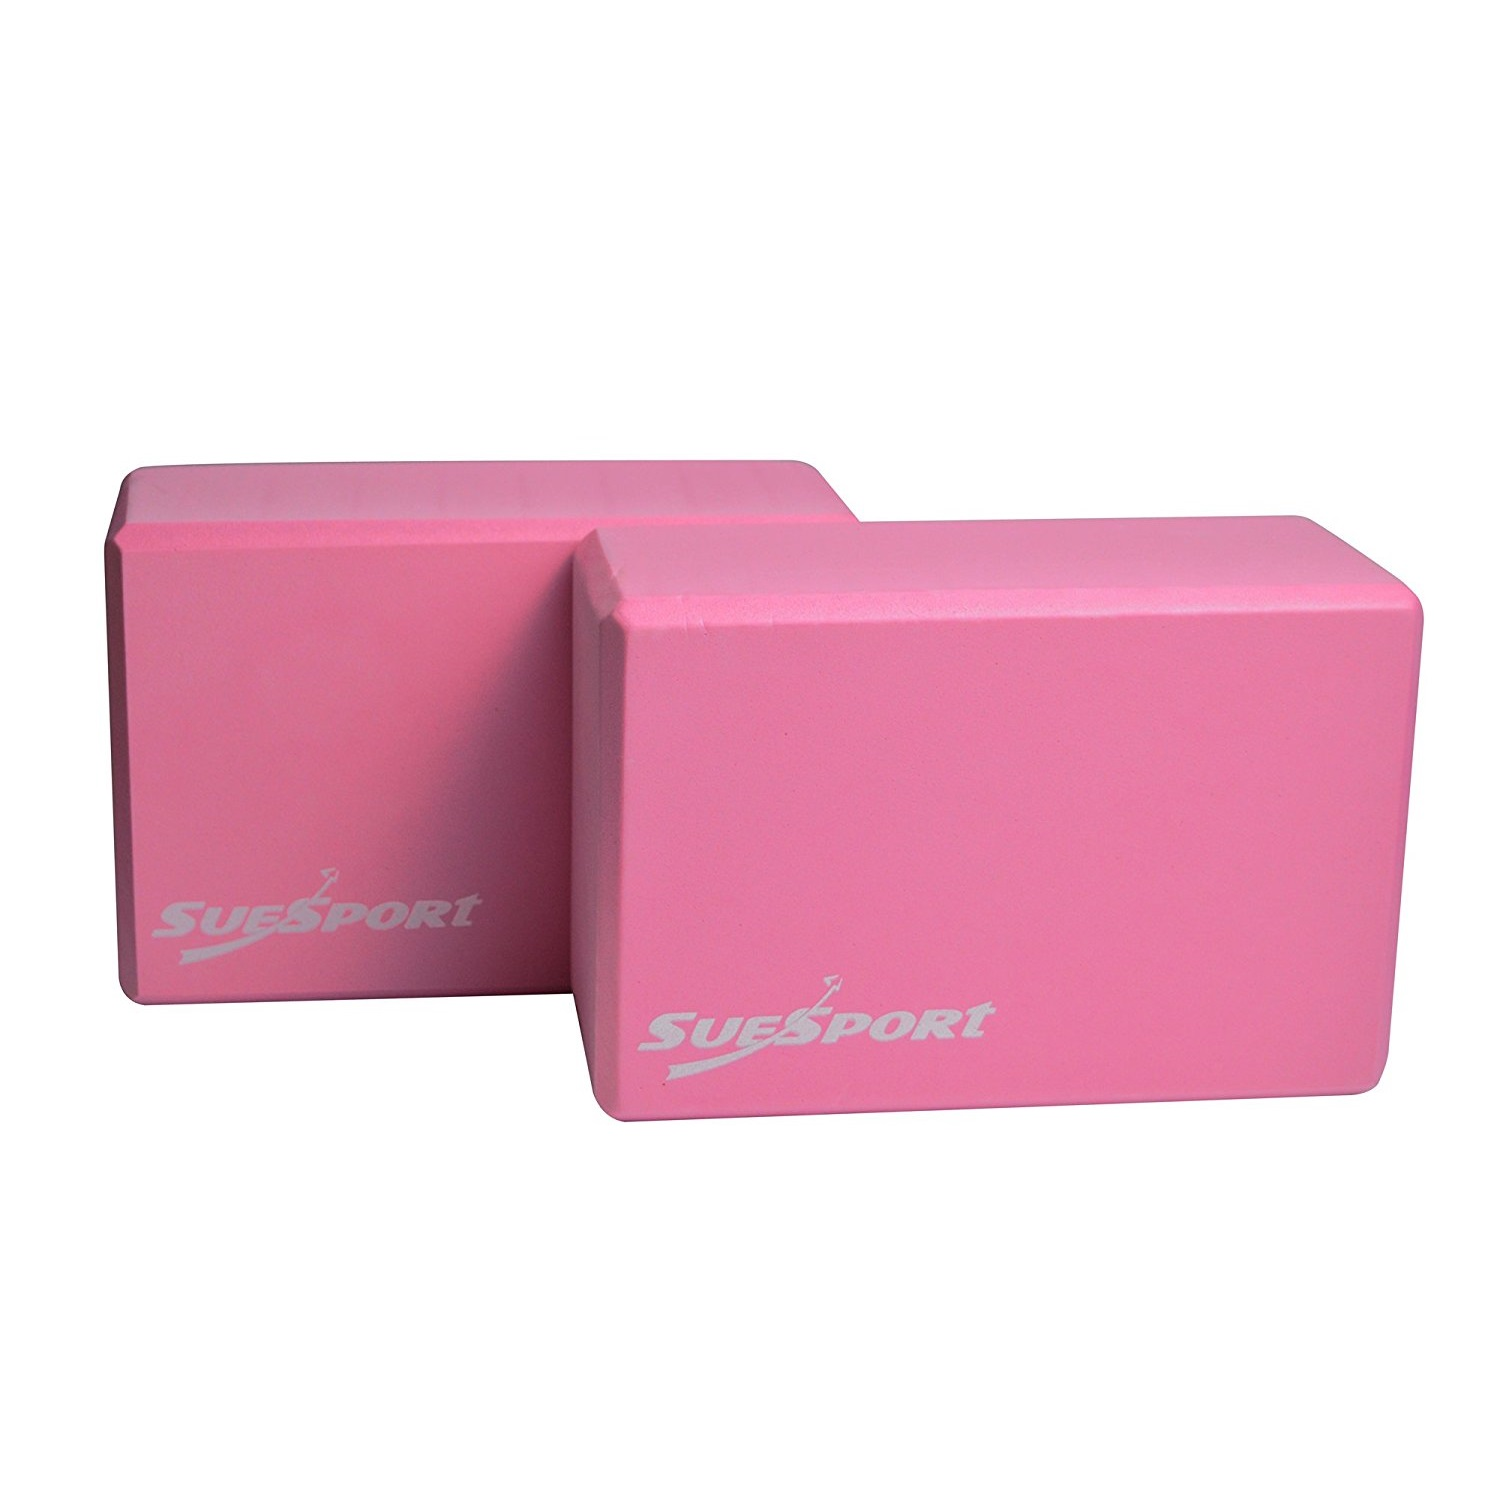 suesport pink high density foam yoga blocks